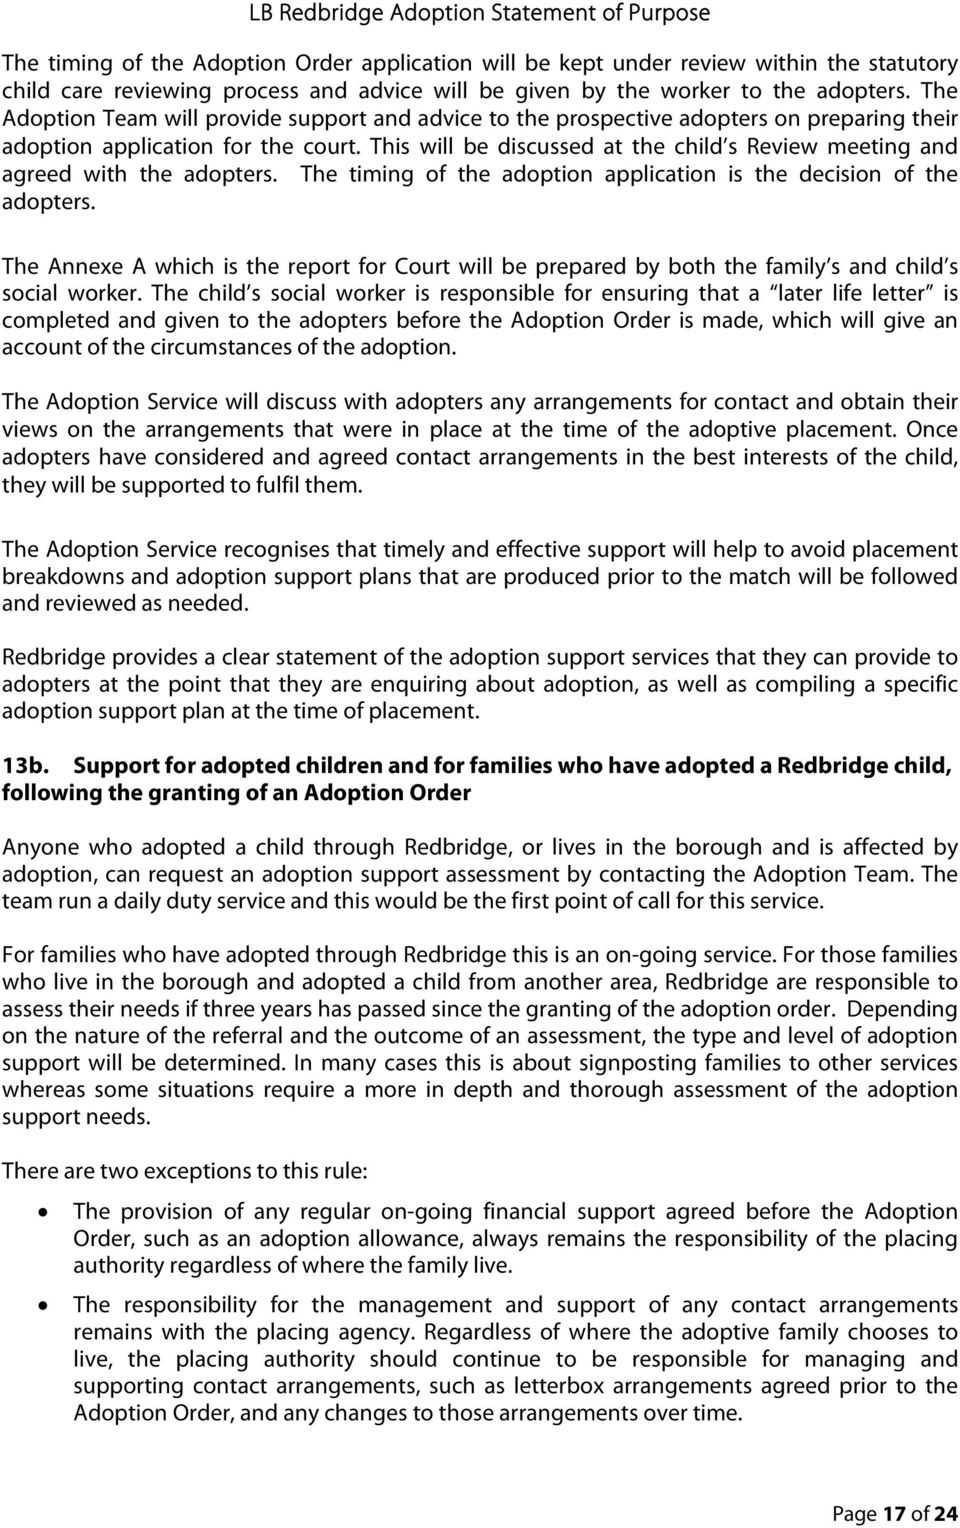 This will be discussed at the child s Review meeting and agreed with the adopters. The timing of the adoption application is the decision of the adopters.